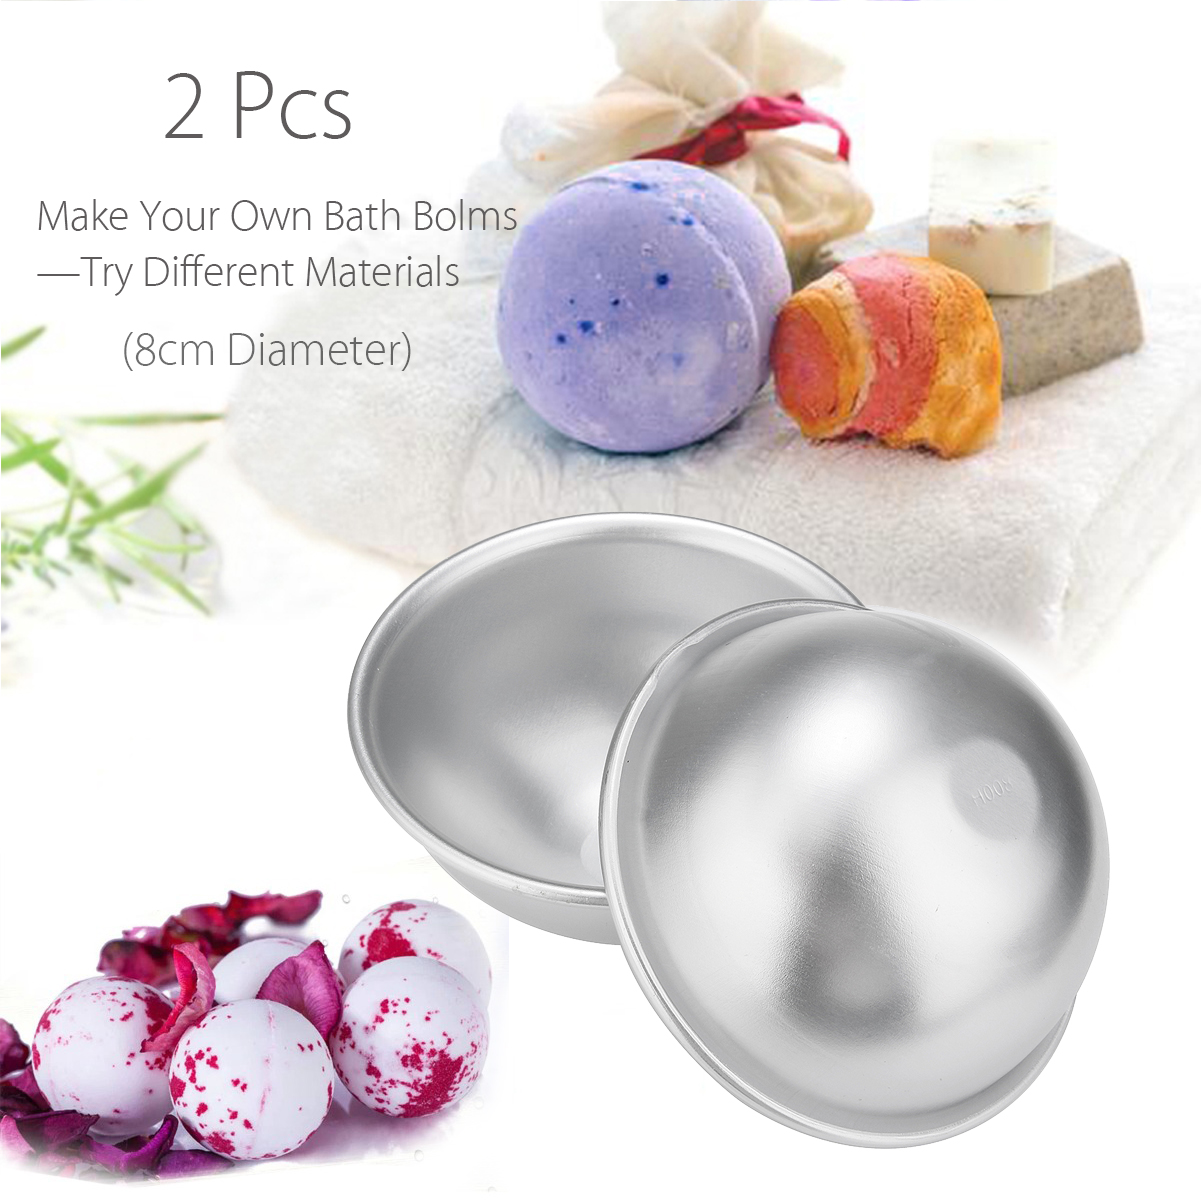 2Pcs 8cm Aluminum Bath Molds Sphere Round Ball Mould DIY Handmade Crafts